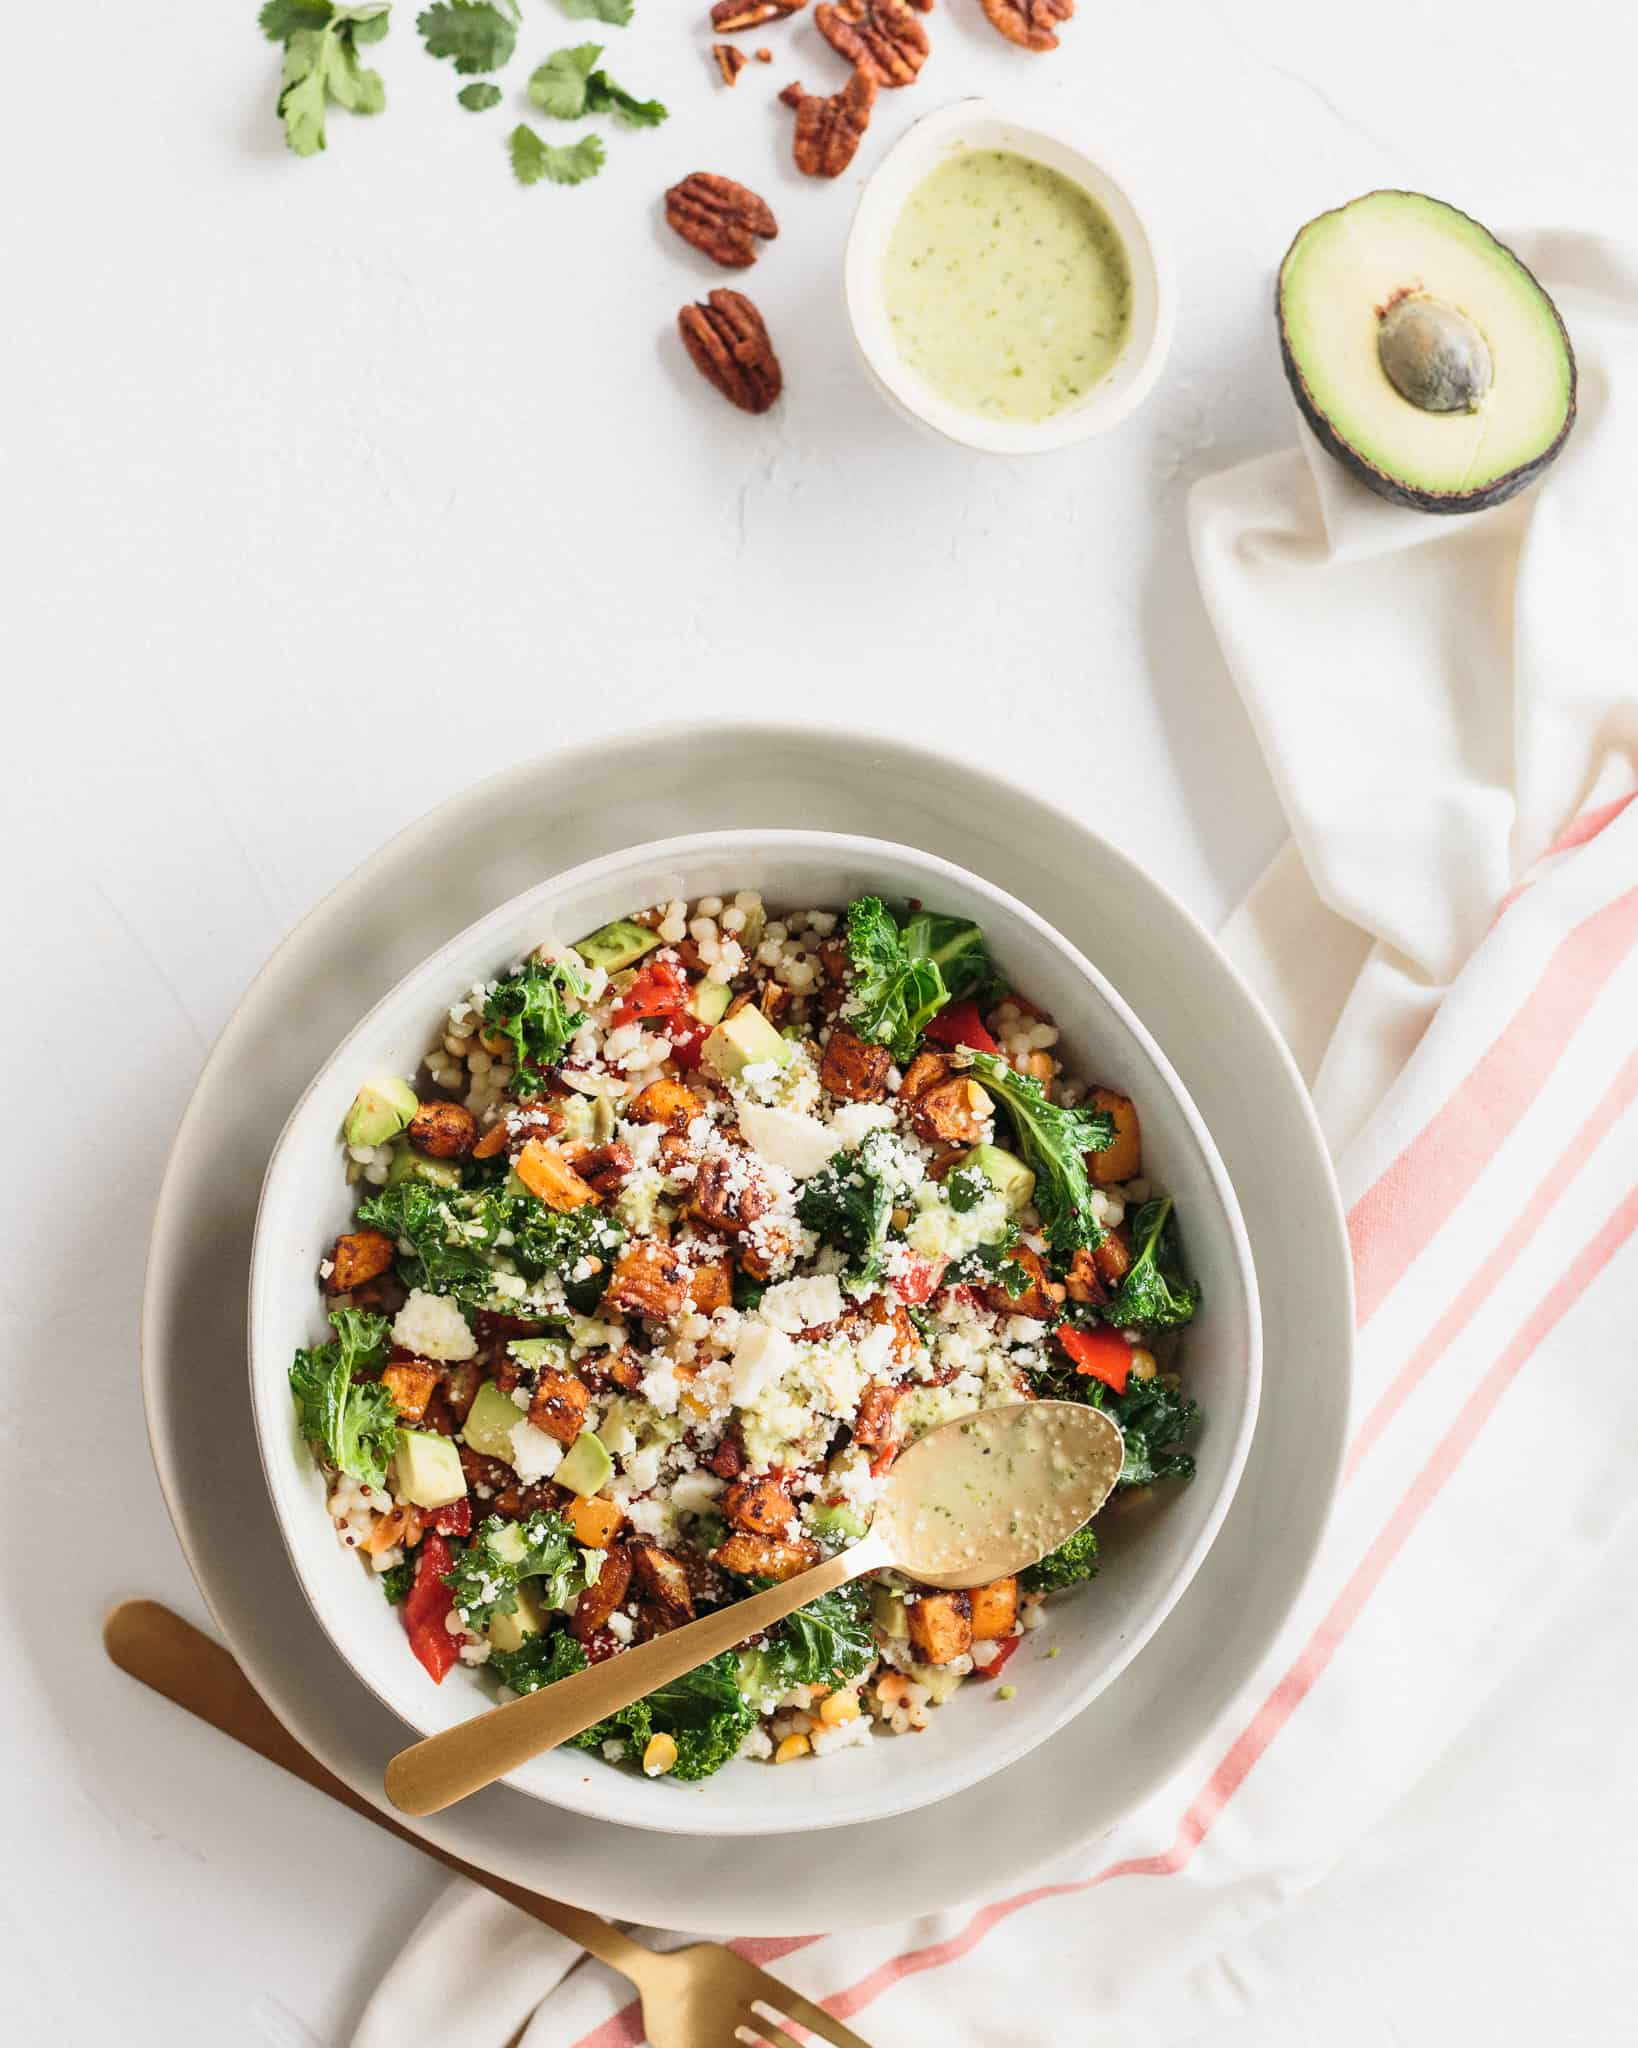 grain bowl from above with sweet potato, cilantro, limes